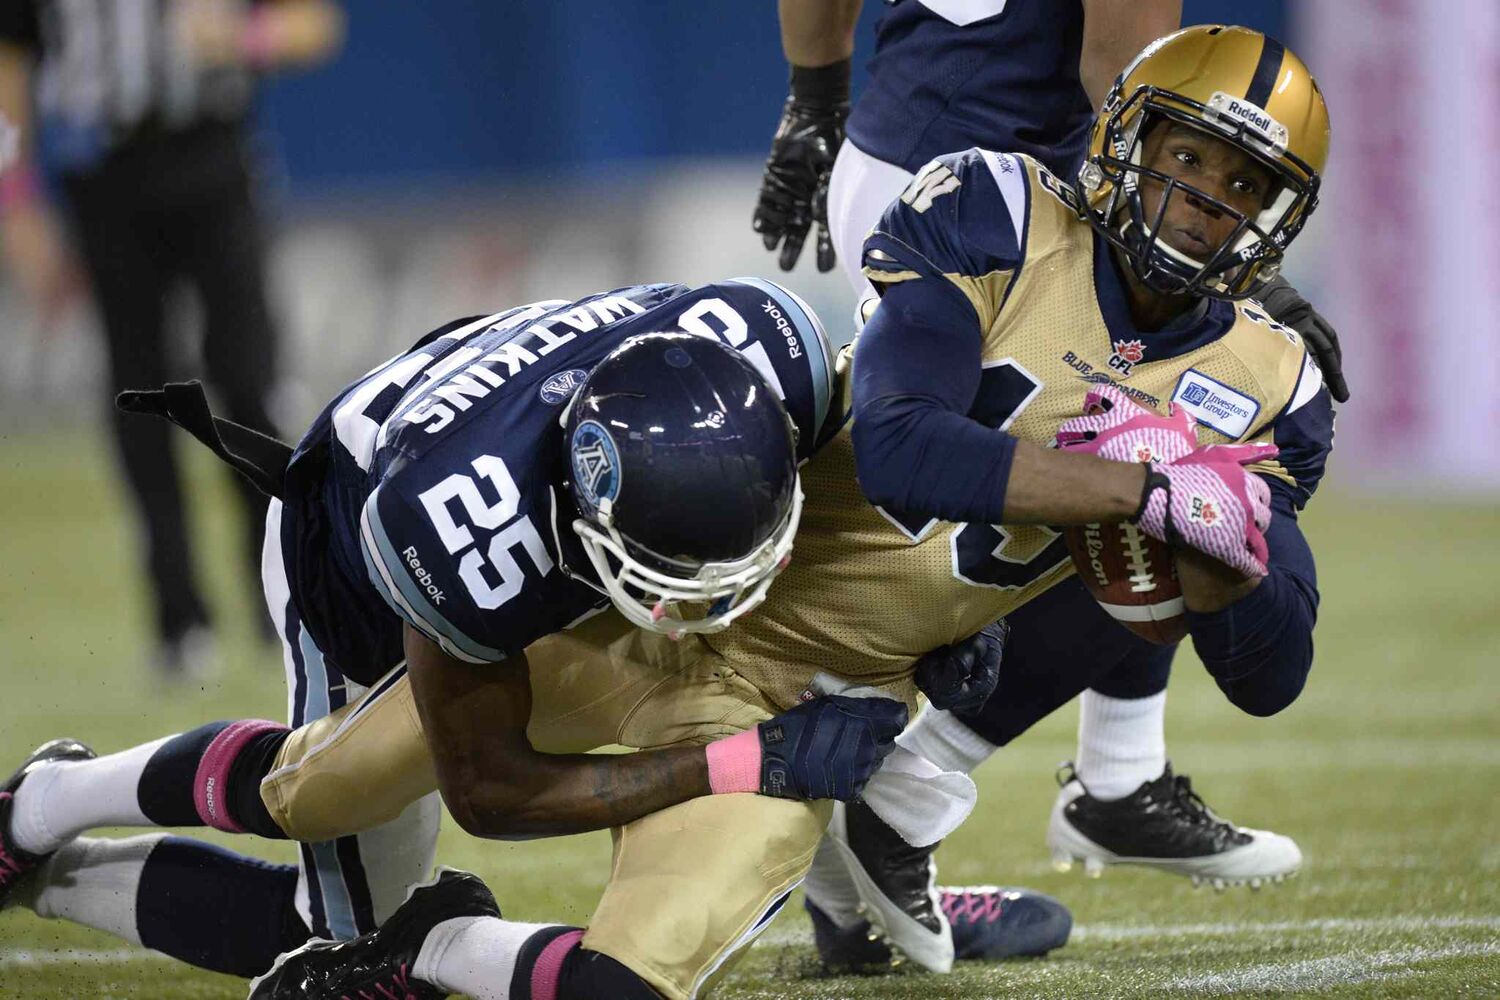 Winnipeg Blue Bombers' Jake Killeen is stopped by Toronto Argonauts' Pat Watkins during the first quarter.